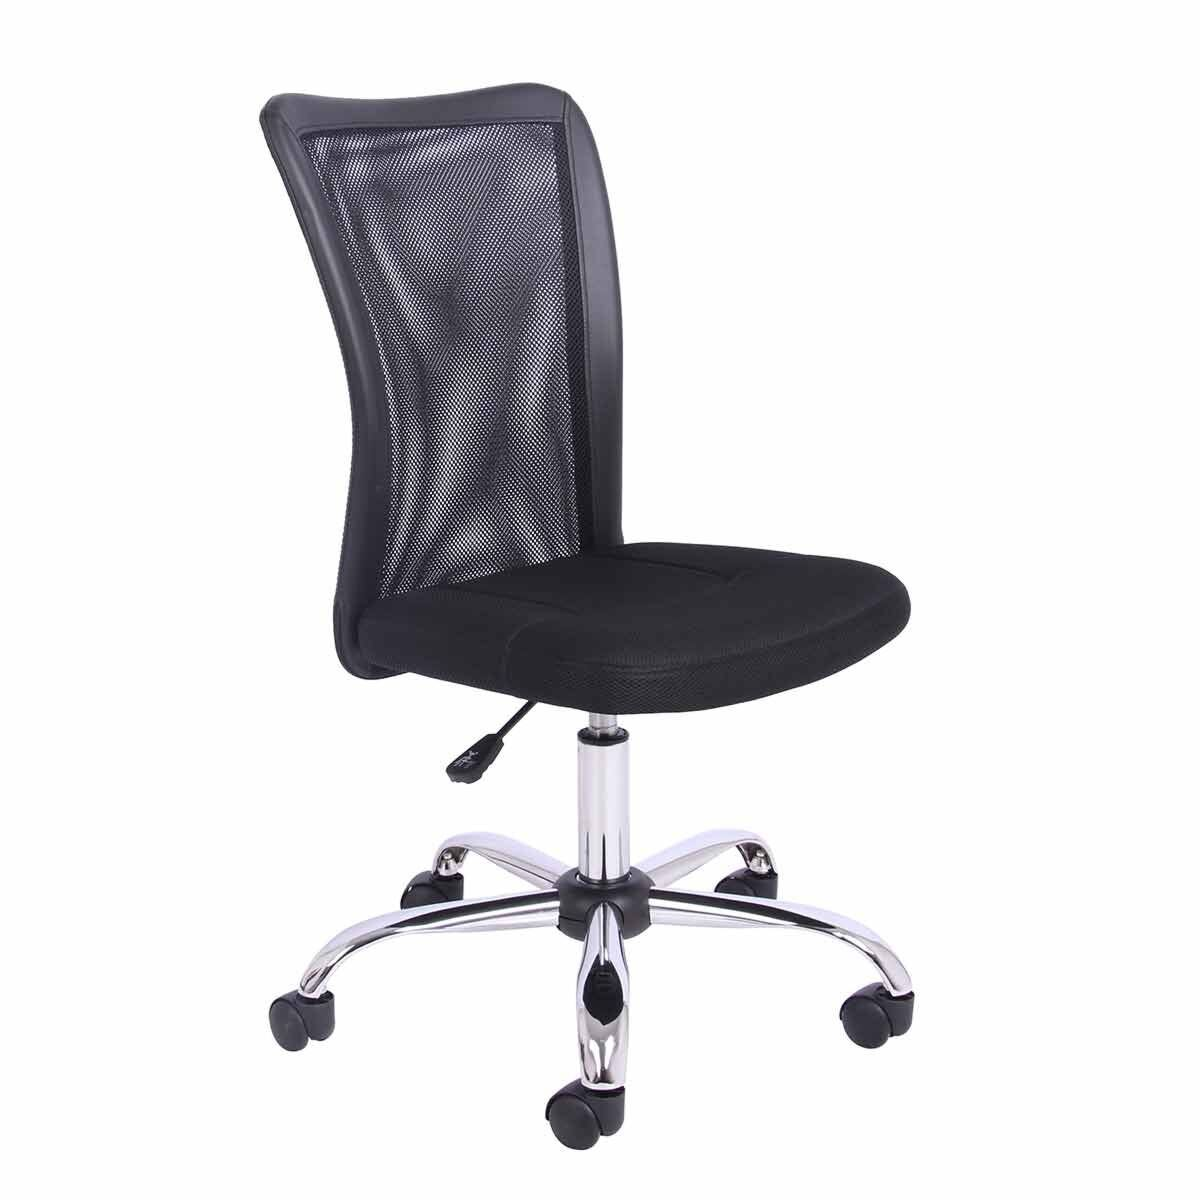 TC Office Cyan Mesh Back Desk Chair